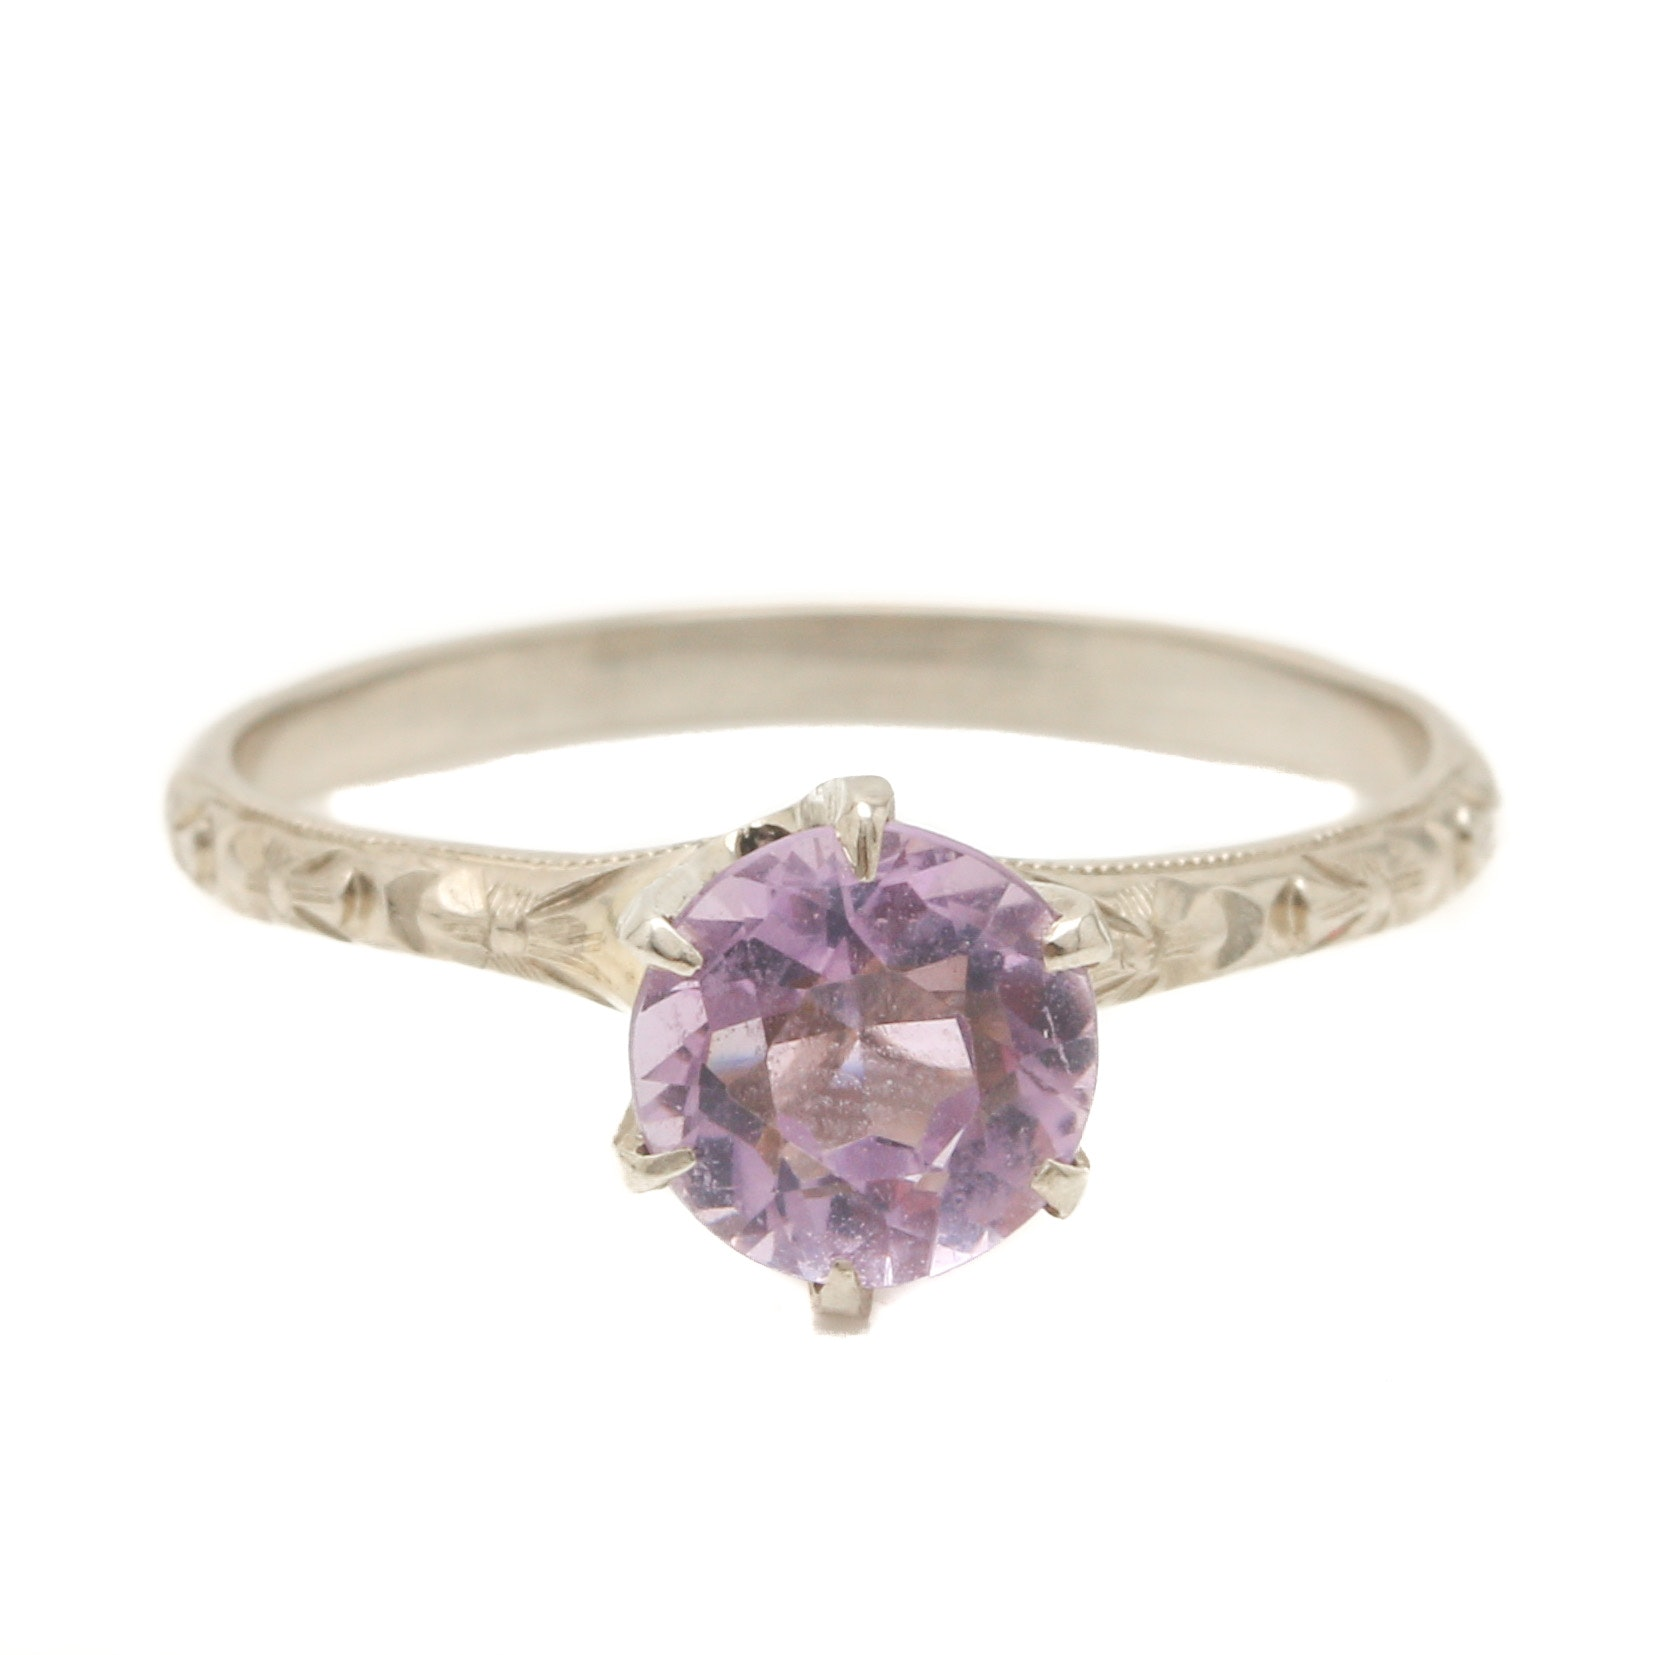 14K White Gold Amethyst Solitaire Ring